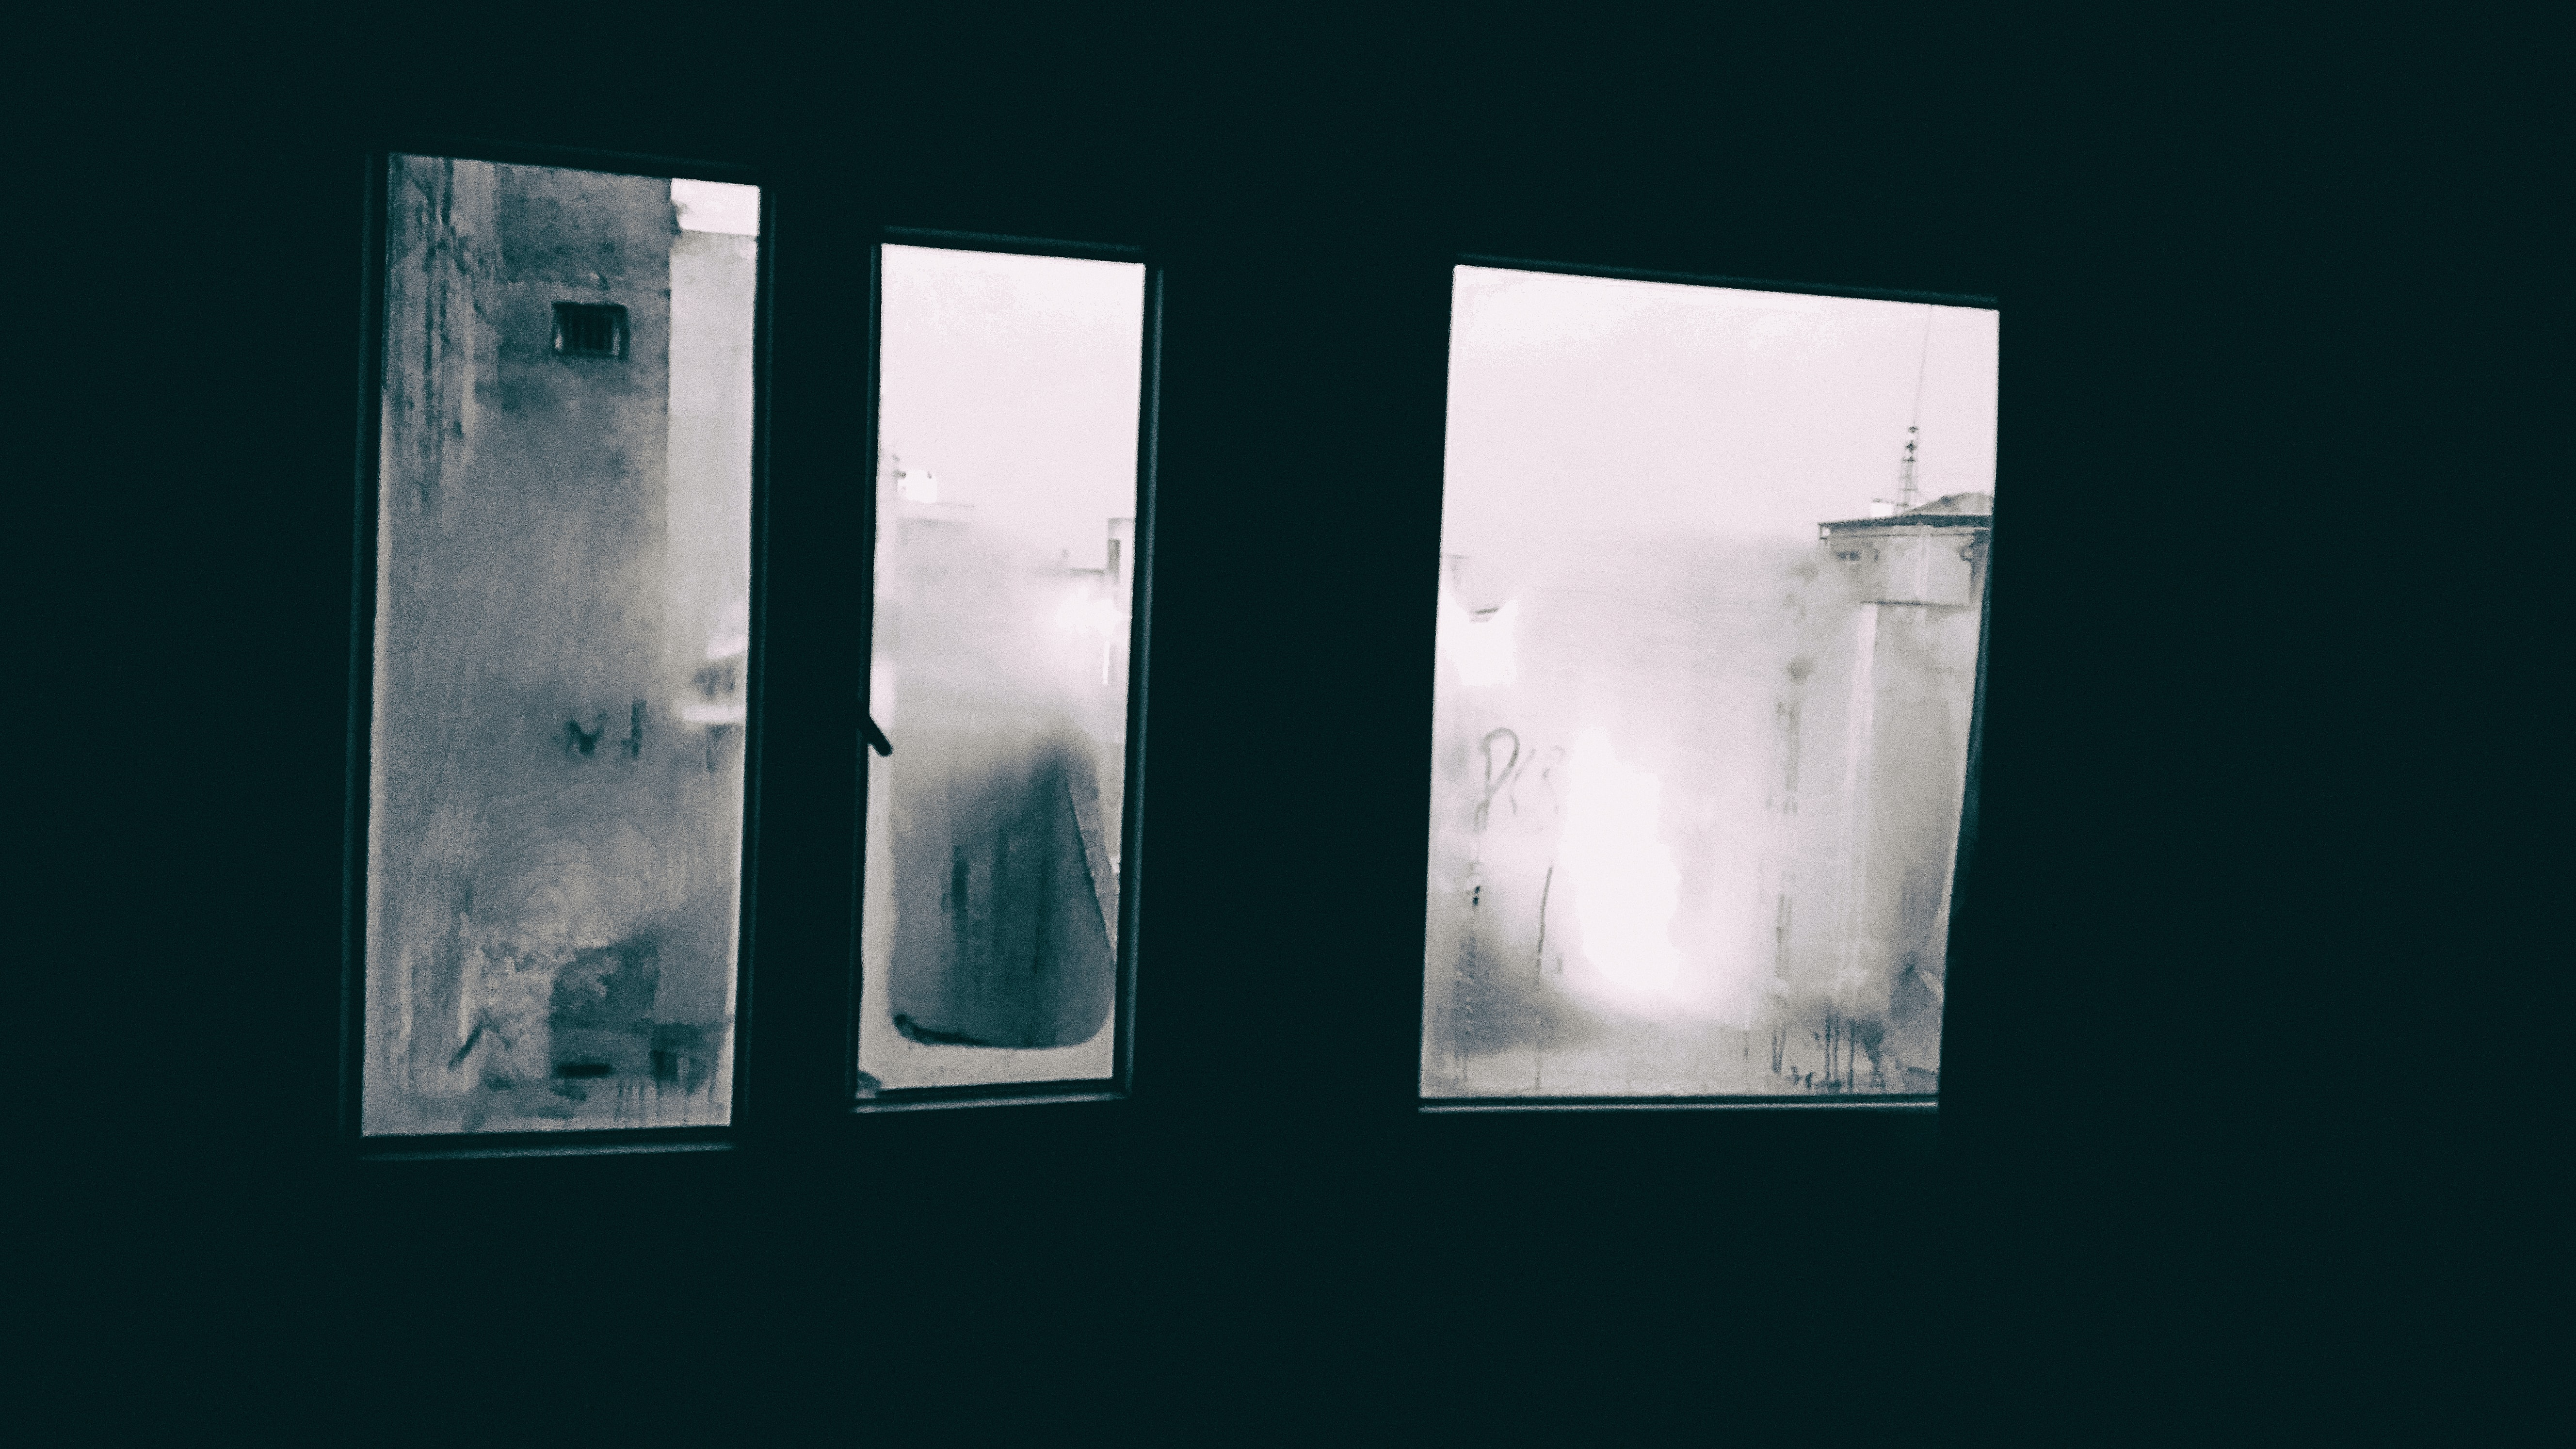 Dark room interior looking out through foggy window in the winter at the buildings outside